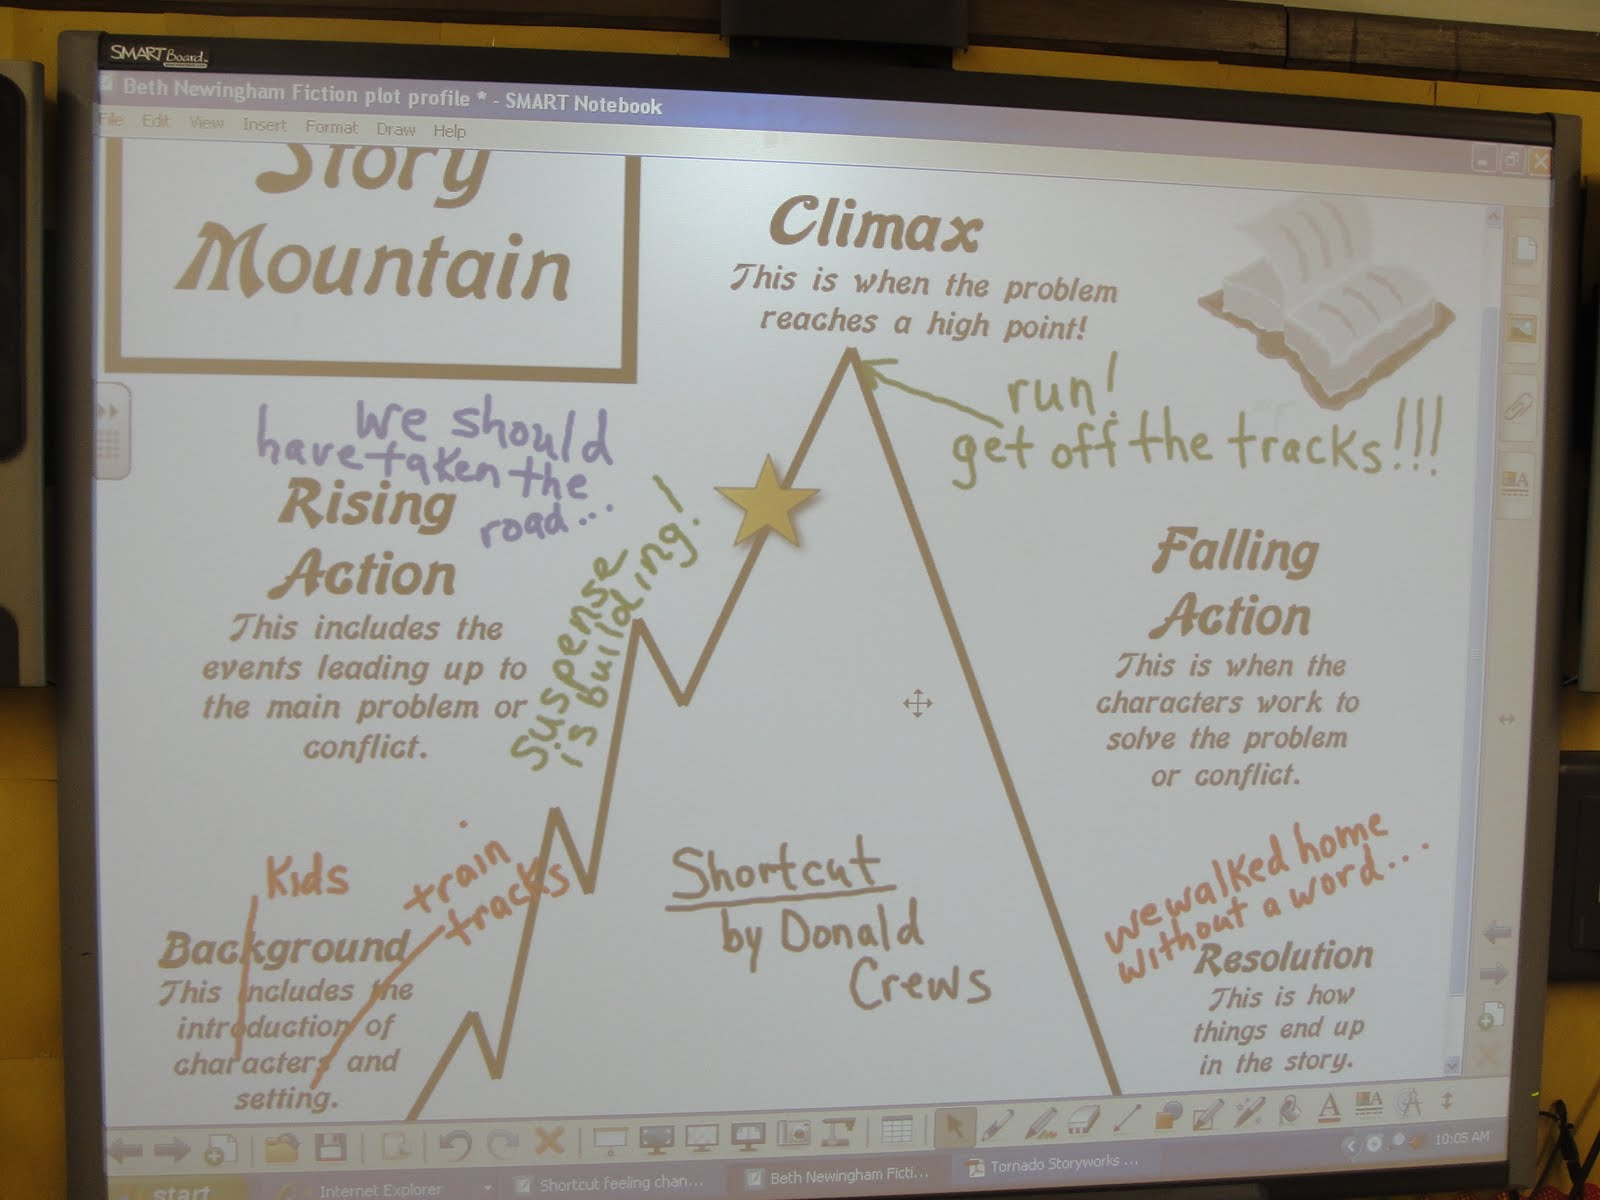 ... and falling action of the story. Great lesson, thanks Emily. Christine